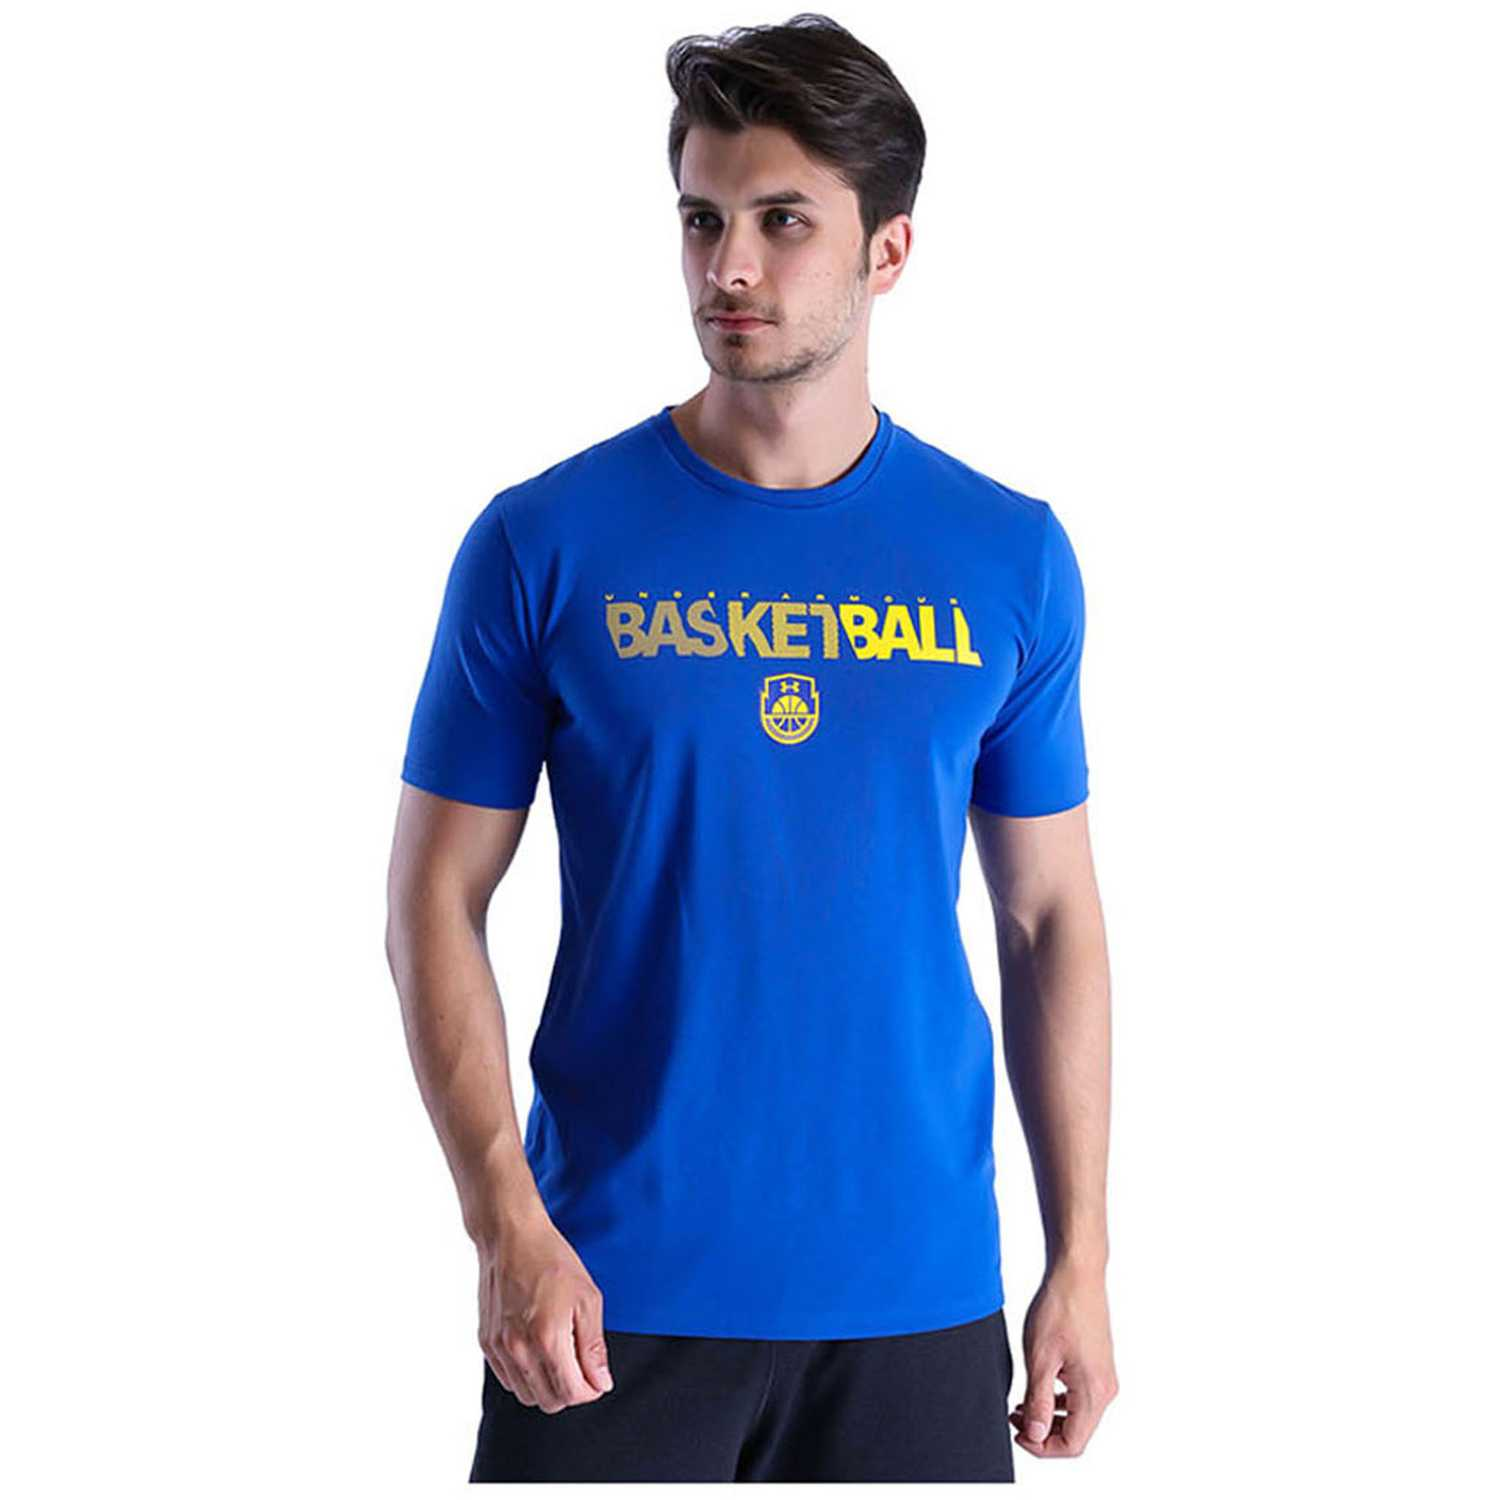 288e786fb8a2e Polo de Hombre Under Armour Azulino basketball wordmark ss ...